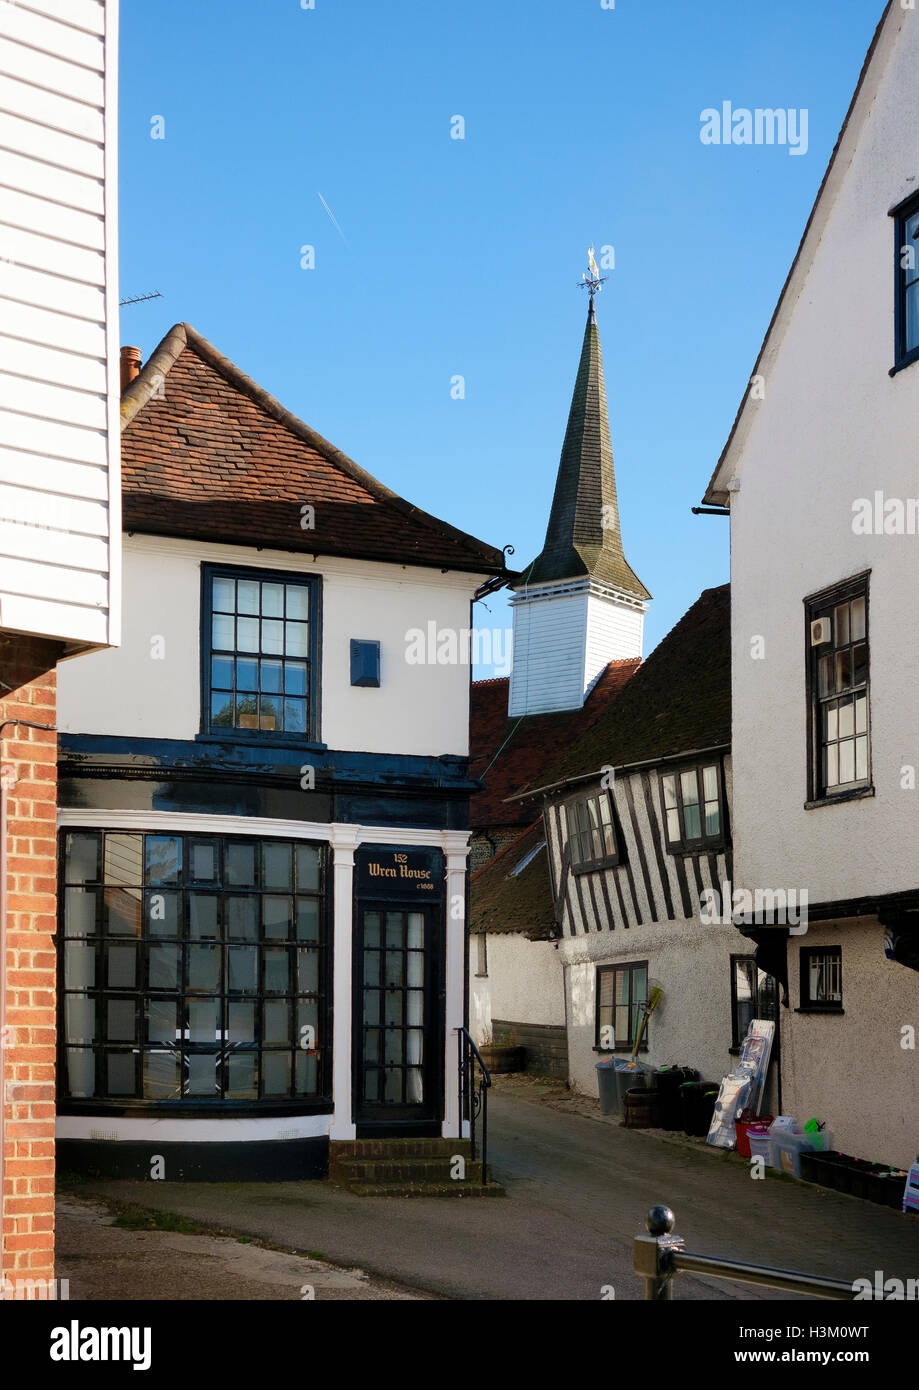 Slightly crooked medieval architecture in the Essex town of Chipping Ongar - Stock Image